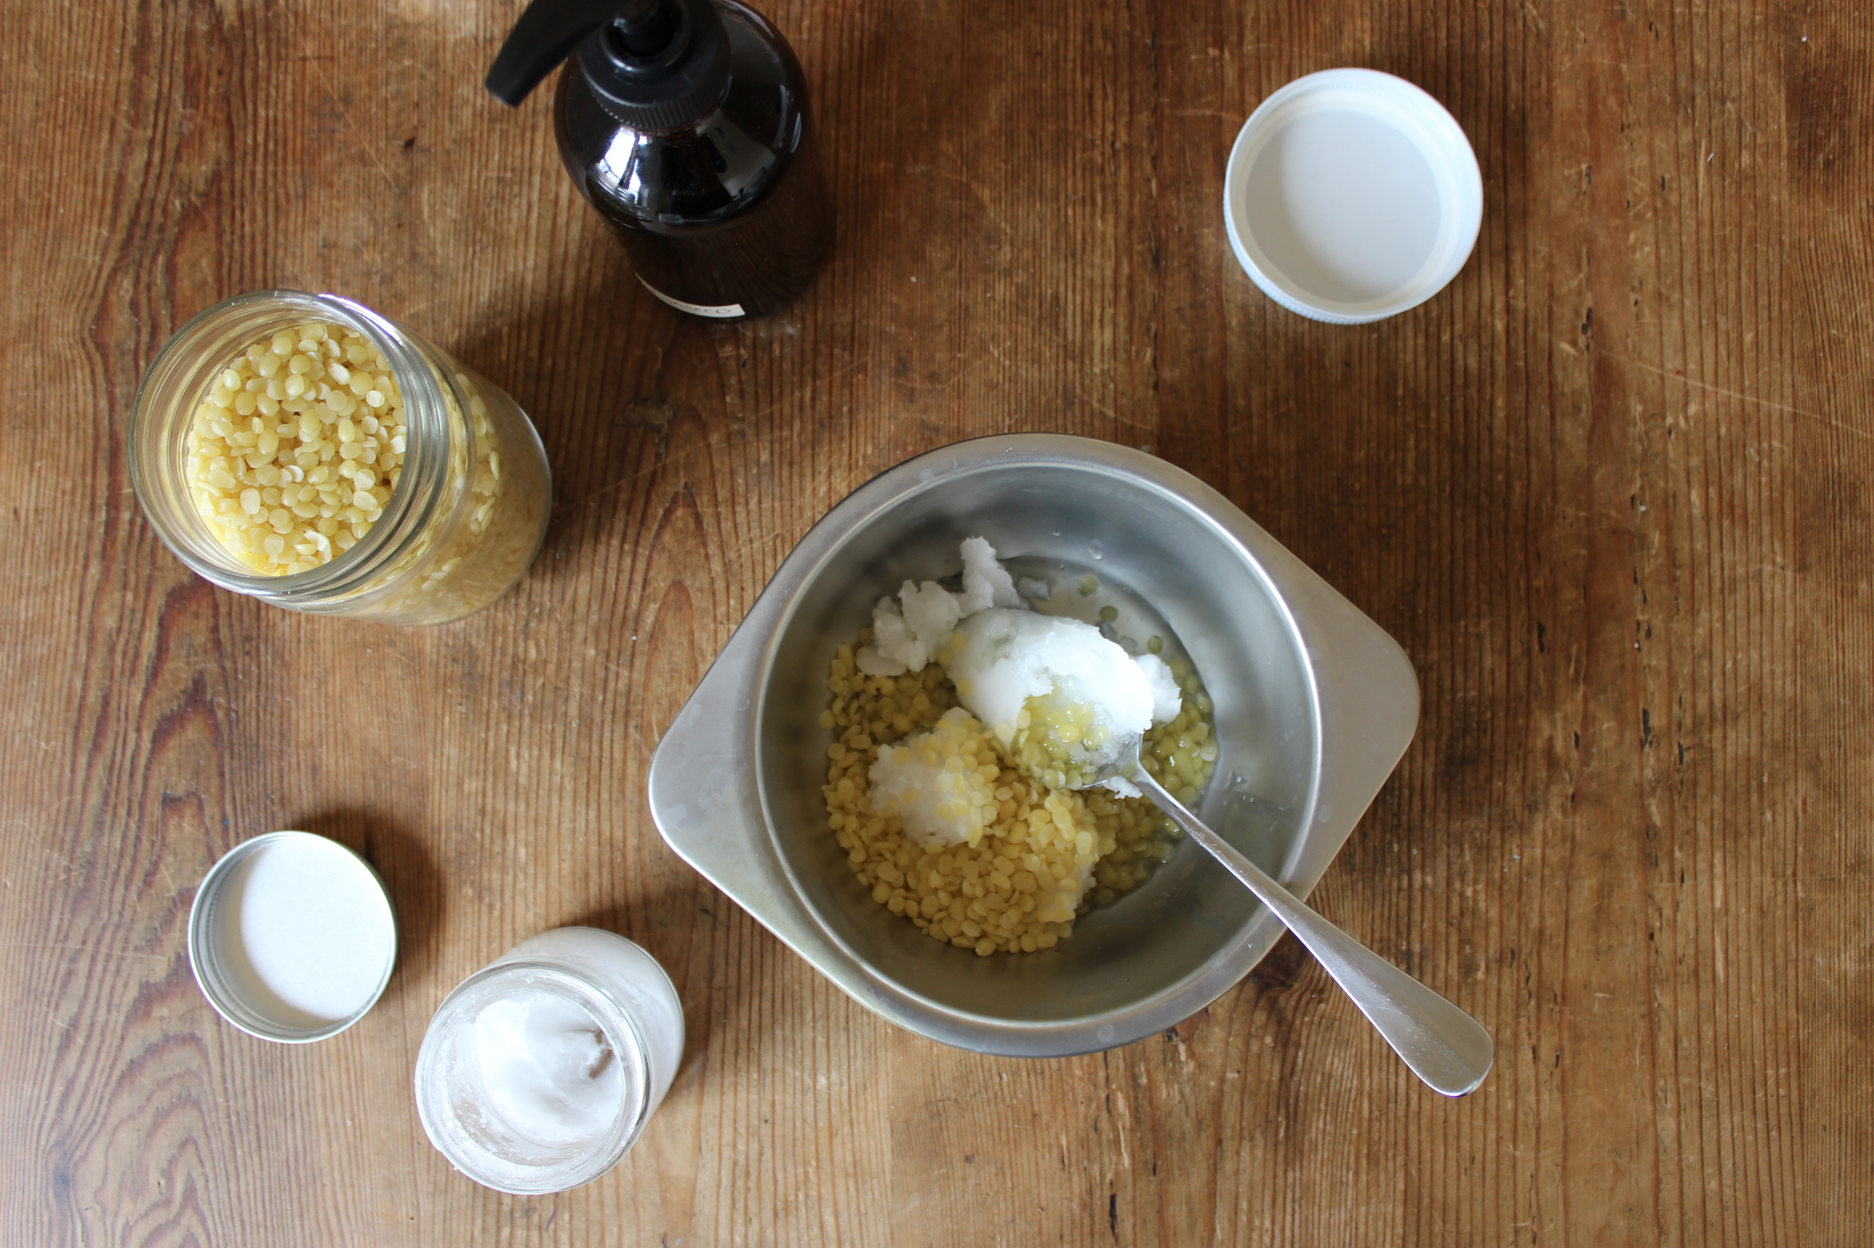 How to make DIY, homemade spoon butter and wood conditioner from zero waste ingredients | Litterless